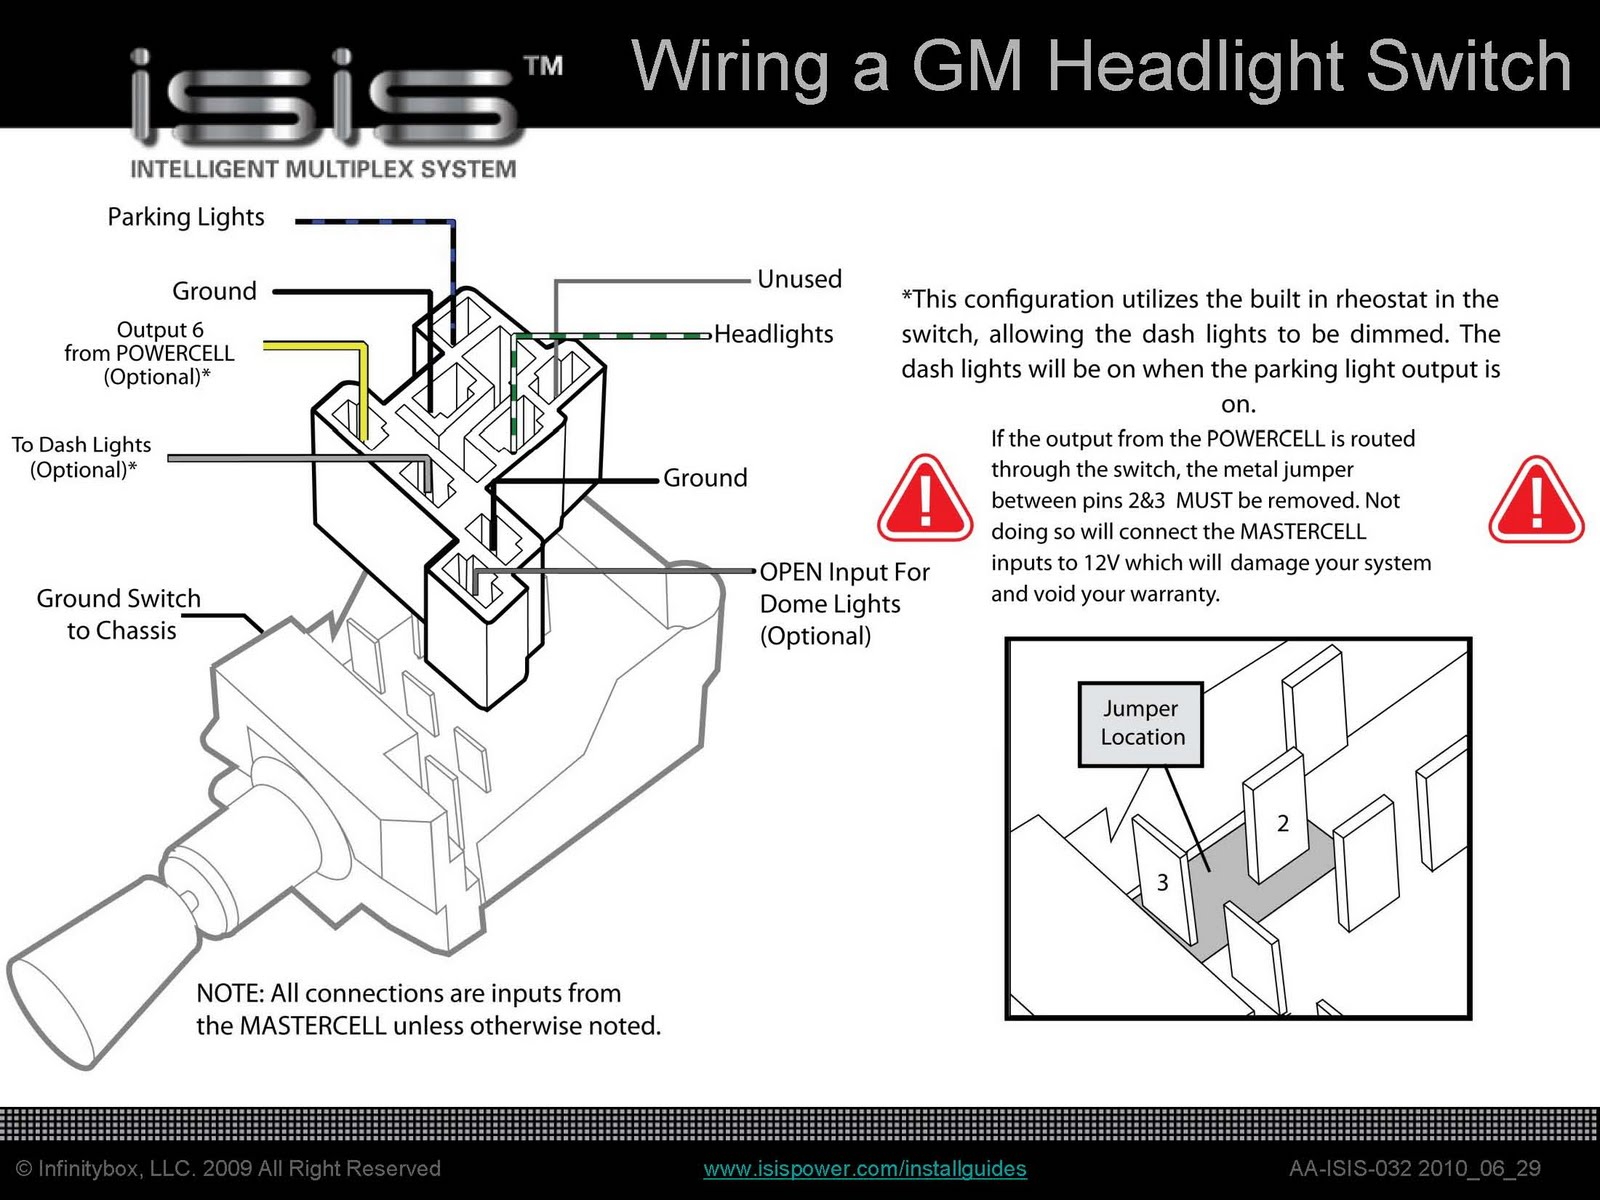 2008 gm radio wiring harness diagram the isis intelligent multiplex system: june 2010 #8